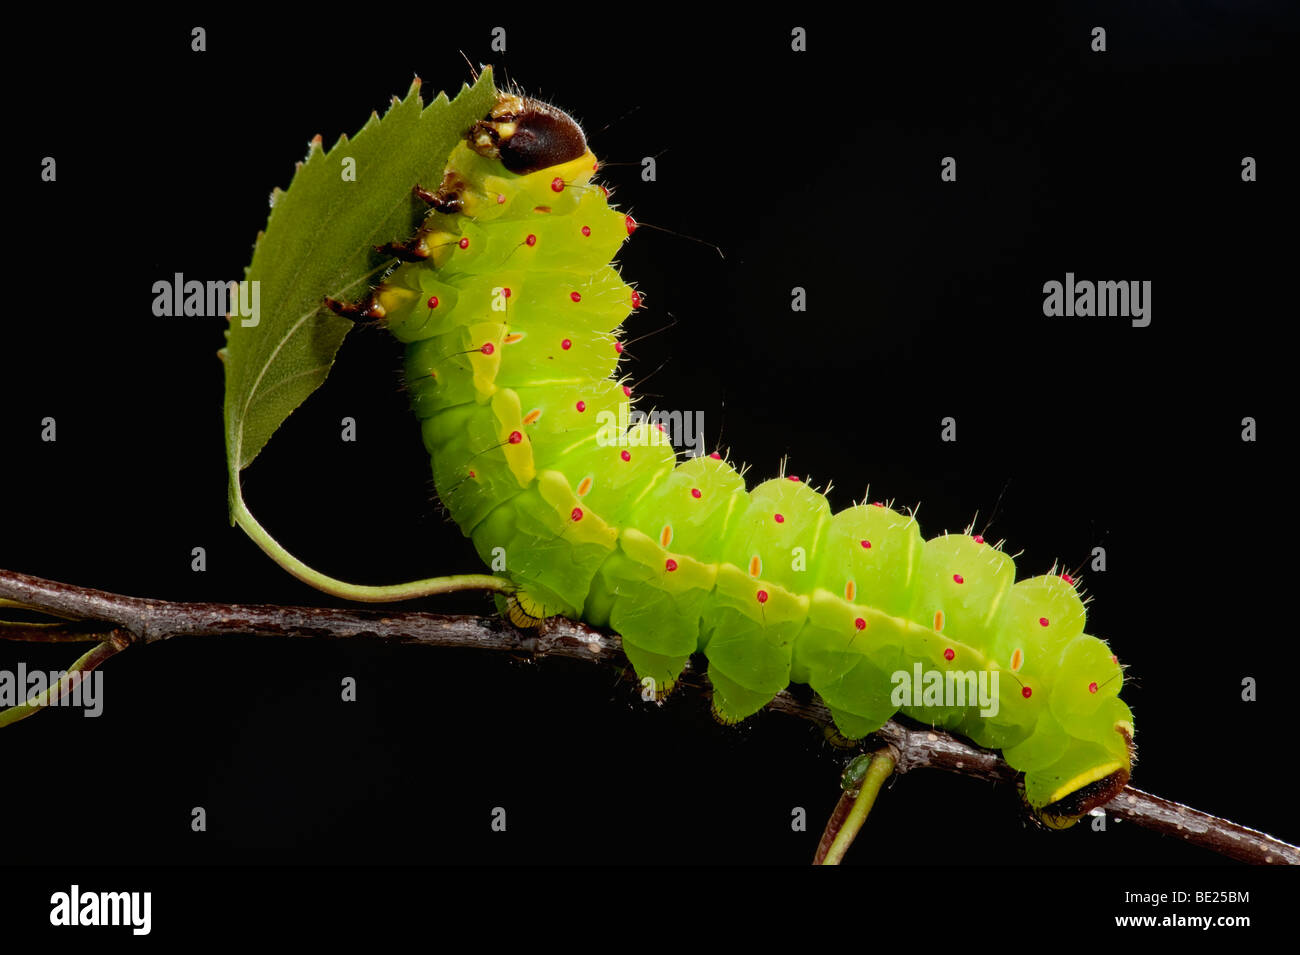 Luna or Moon Moth Caterpillar Actias luna larvae feeding on birch leaves bright green - Stock Image